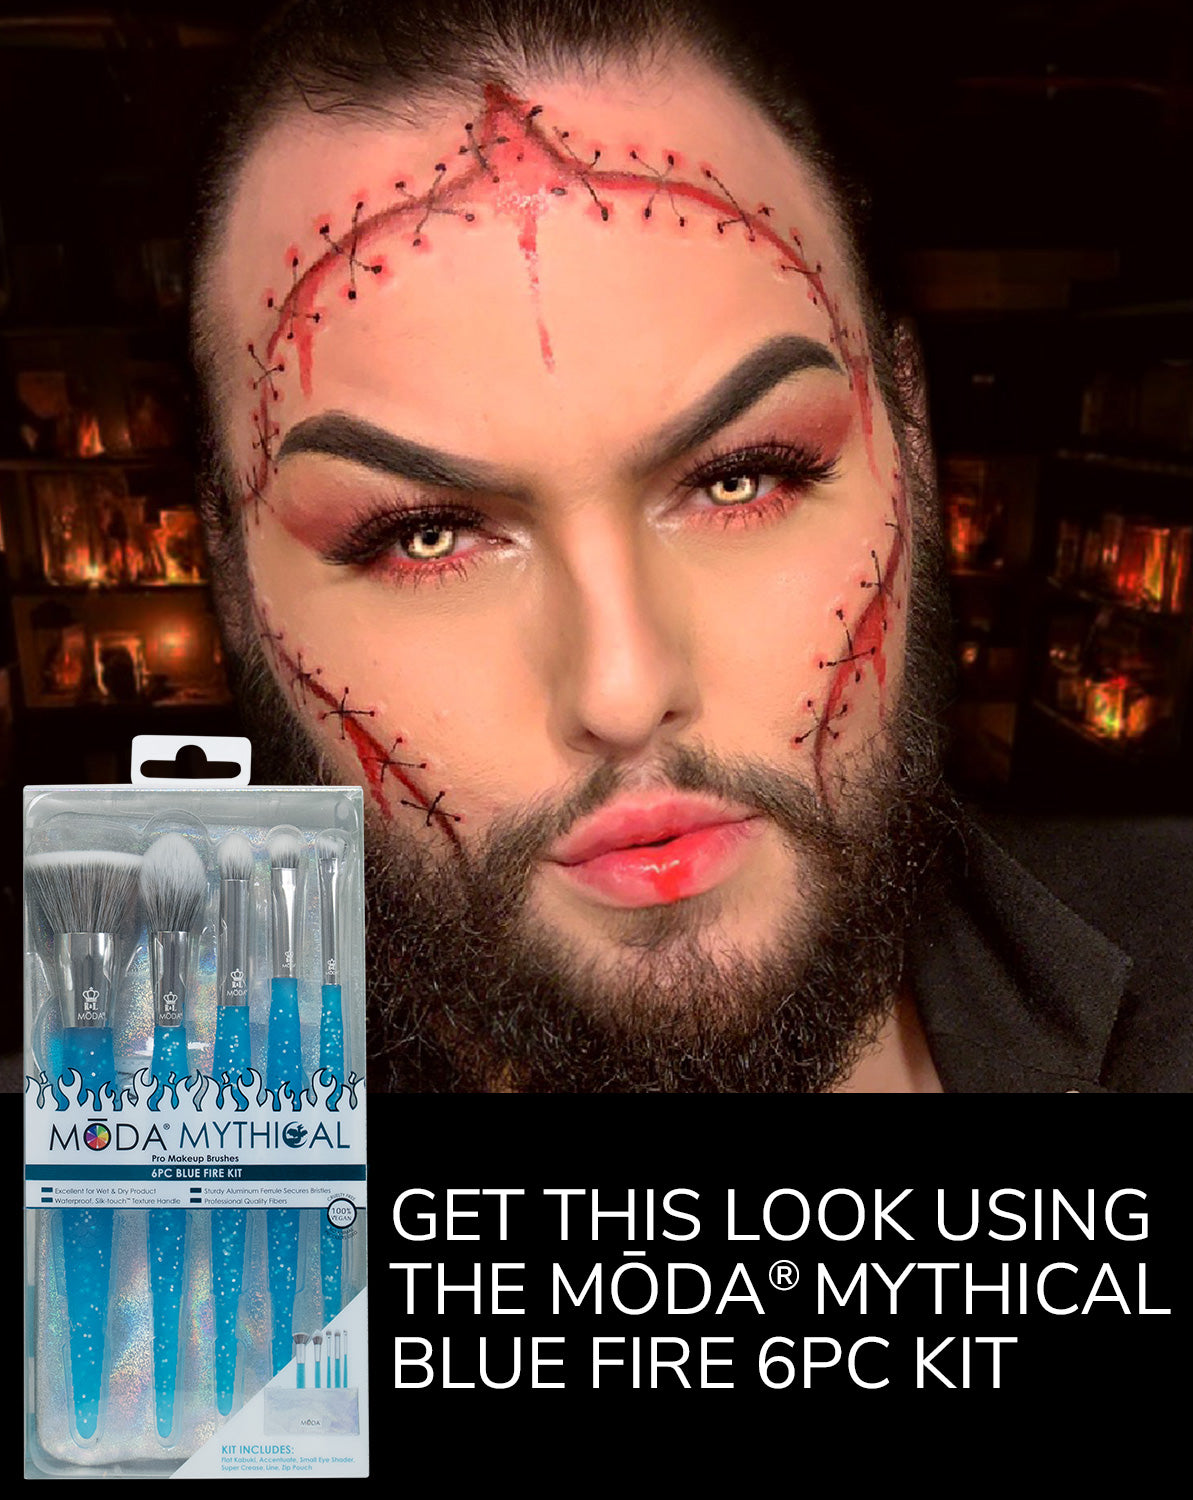 Get this look using the MŌDA® Mythical Blue Fire 6PC Kit!